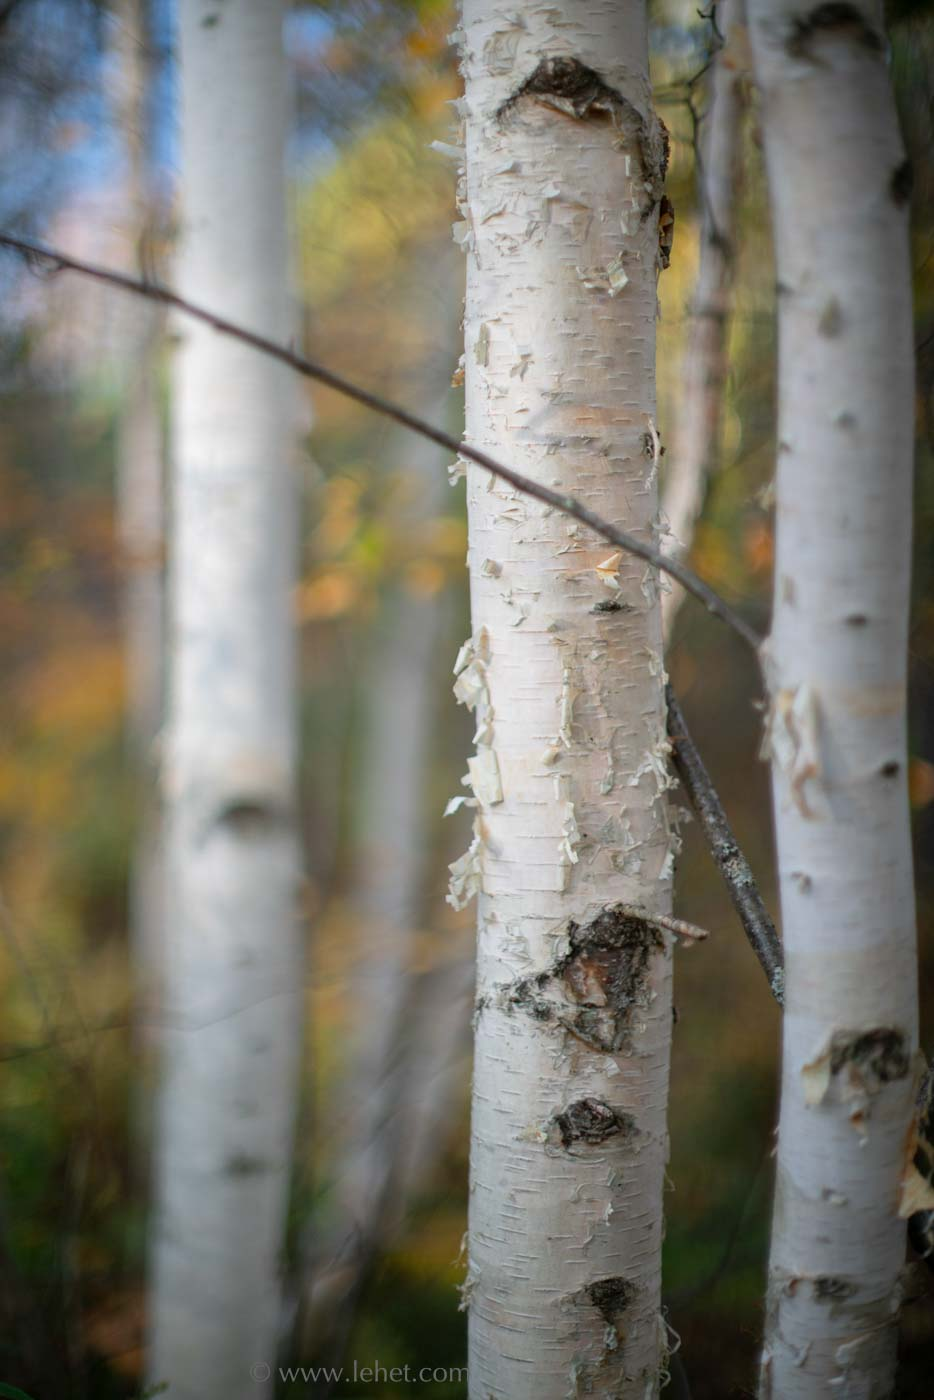 Birches and Fall Foliage, wide aperture